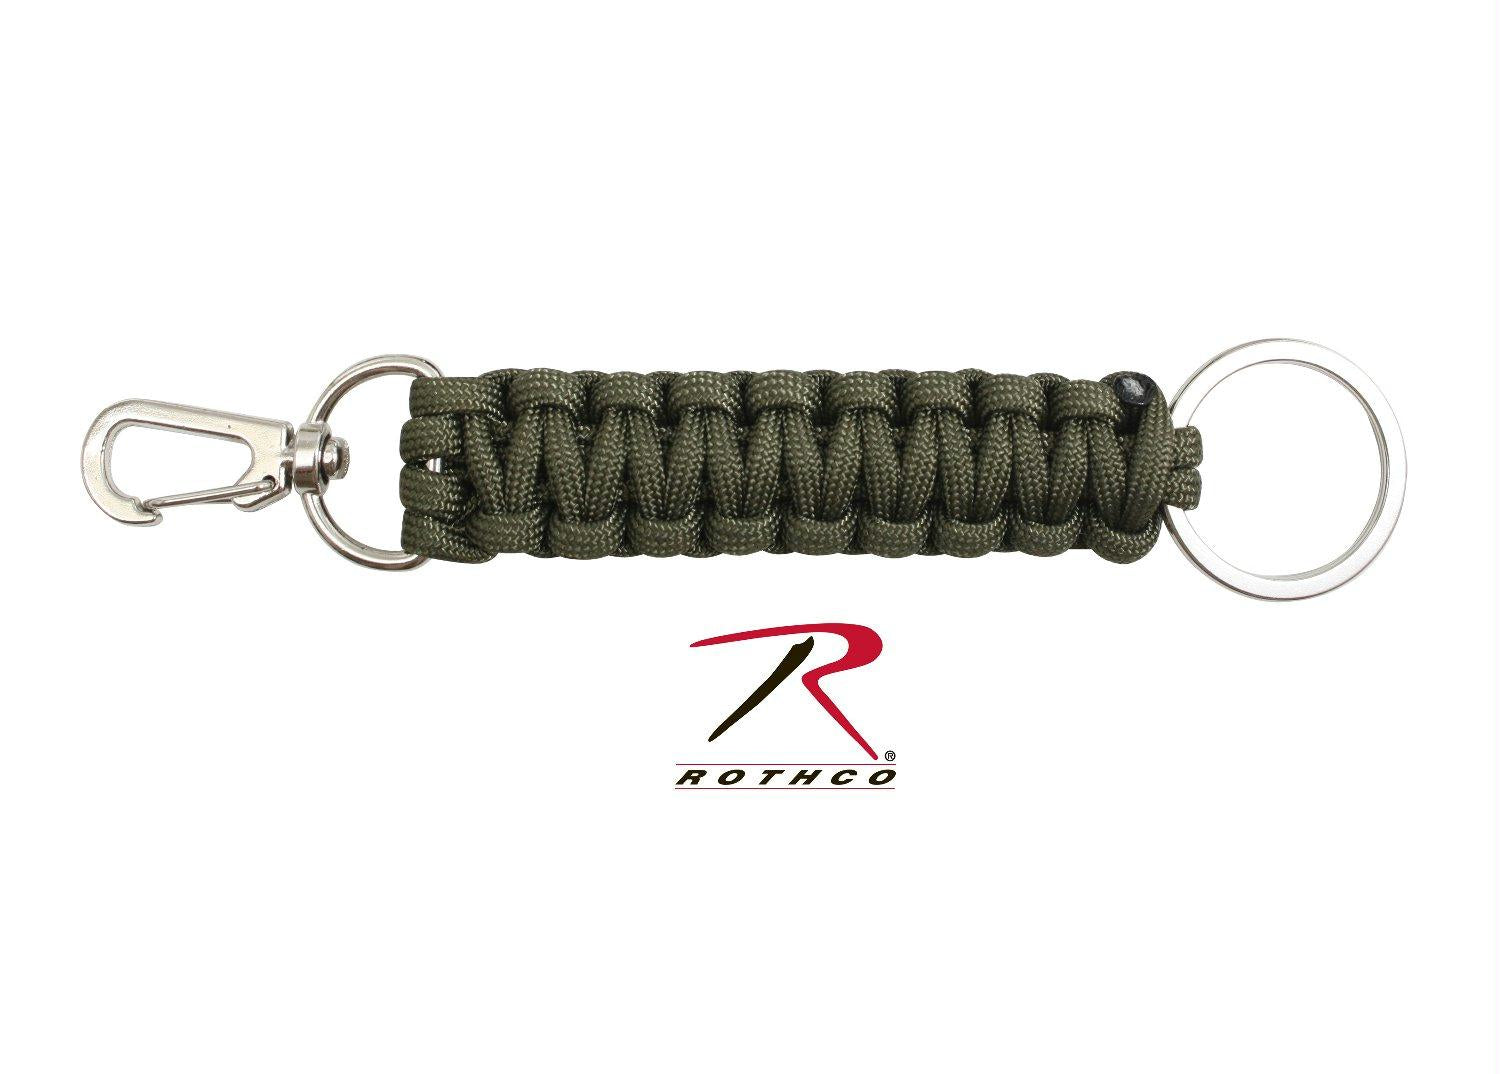 Rothco Paracord Keychain - Olive Drab